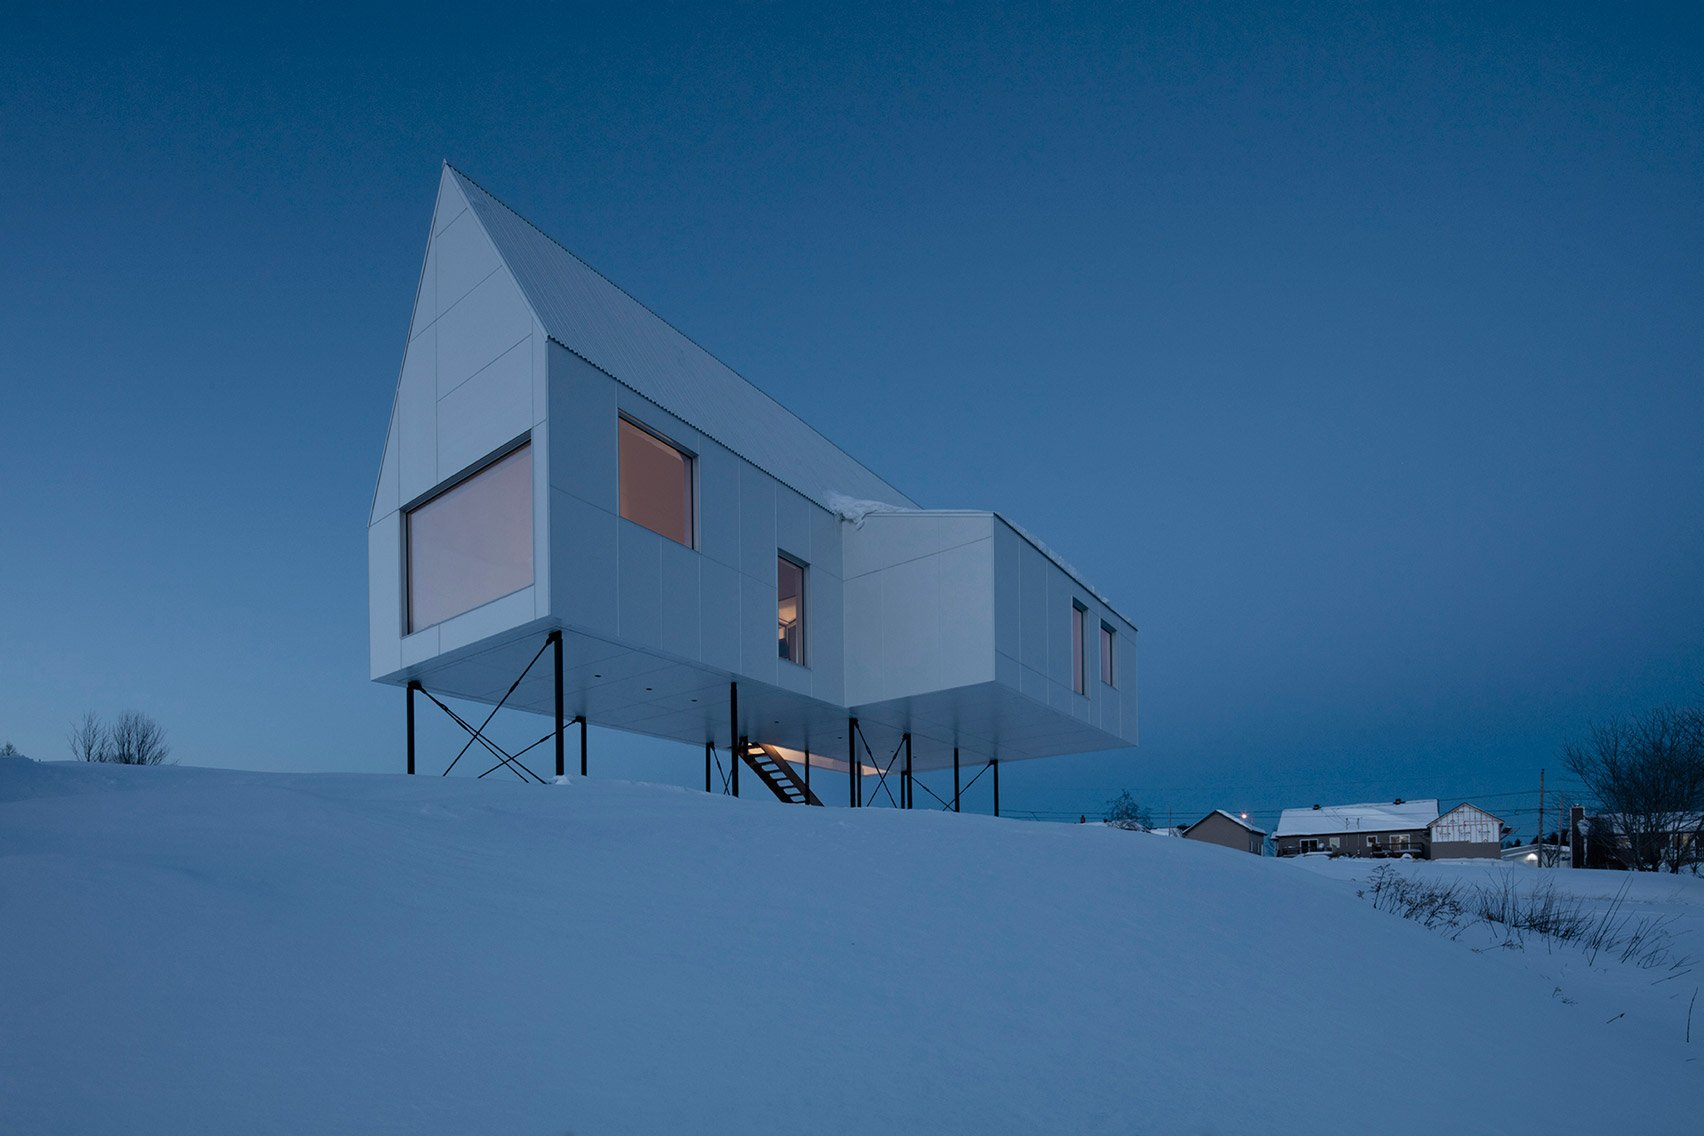 Delordinaire raises High House above snowy Quebec countryside to